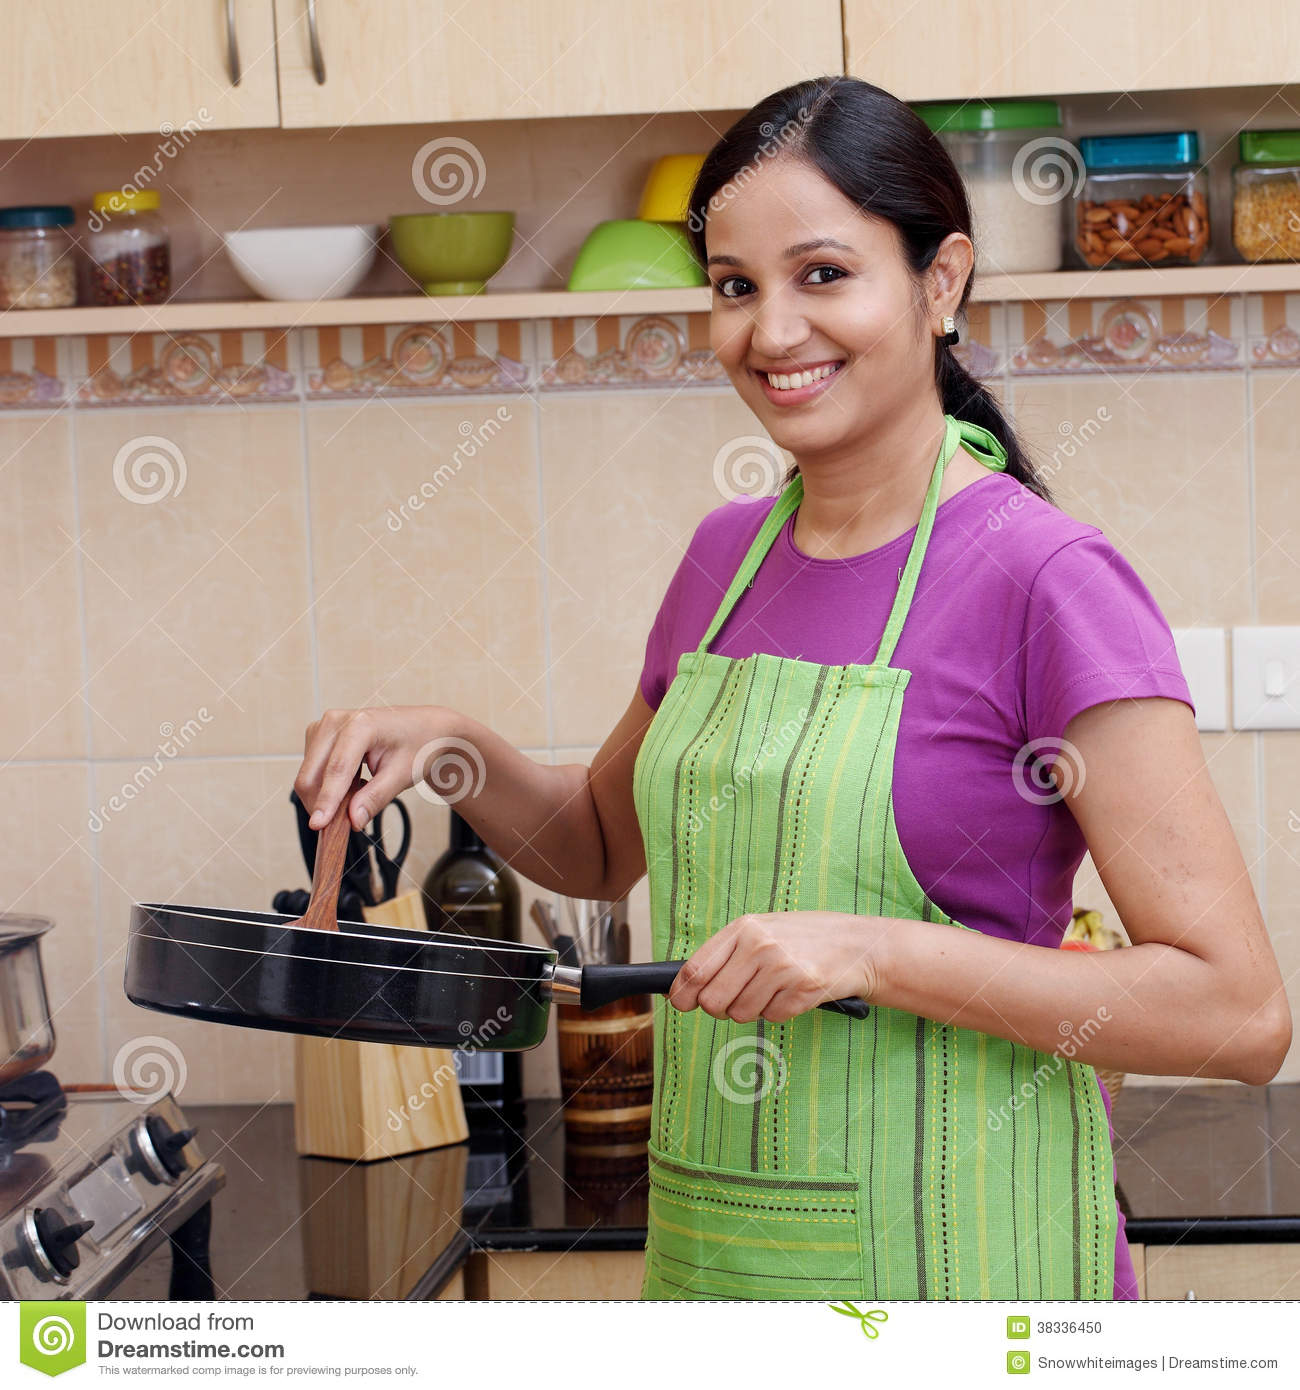 Women Kitchen: Young Woman In Kitchen Stock Photo. Image Of Kitchen